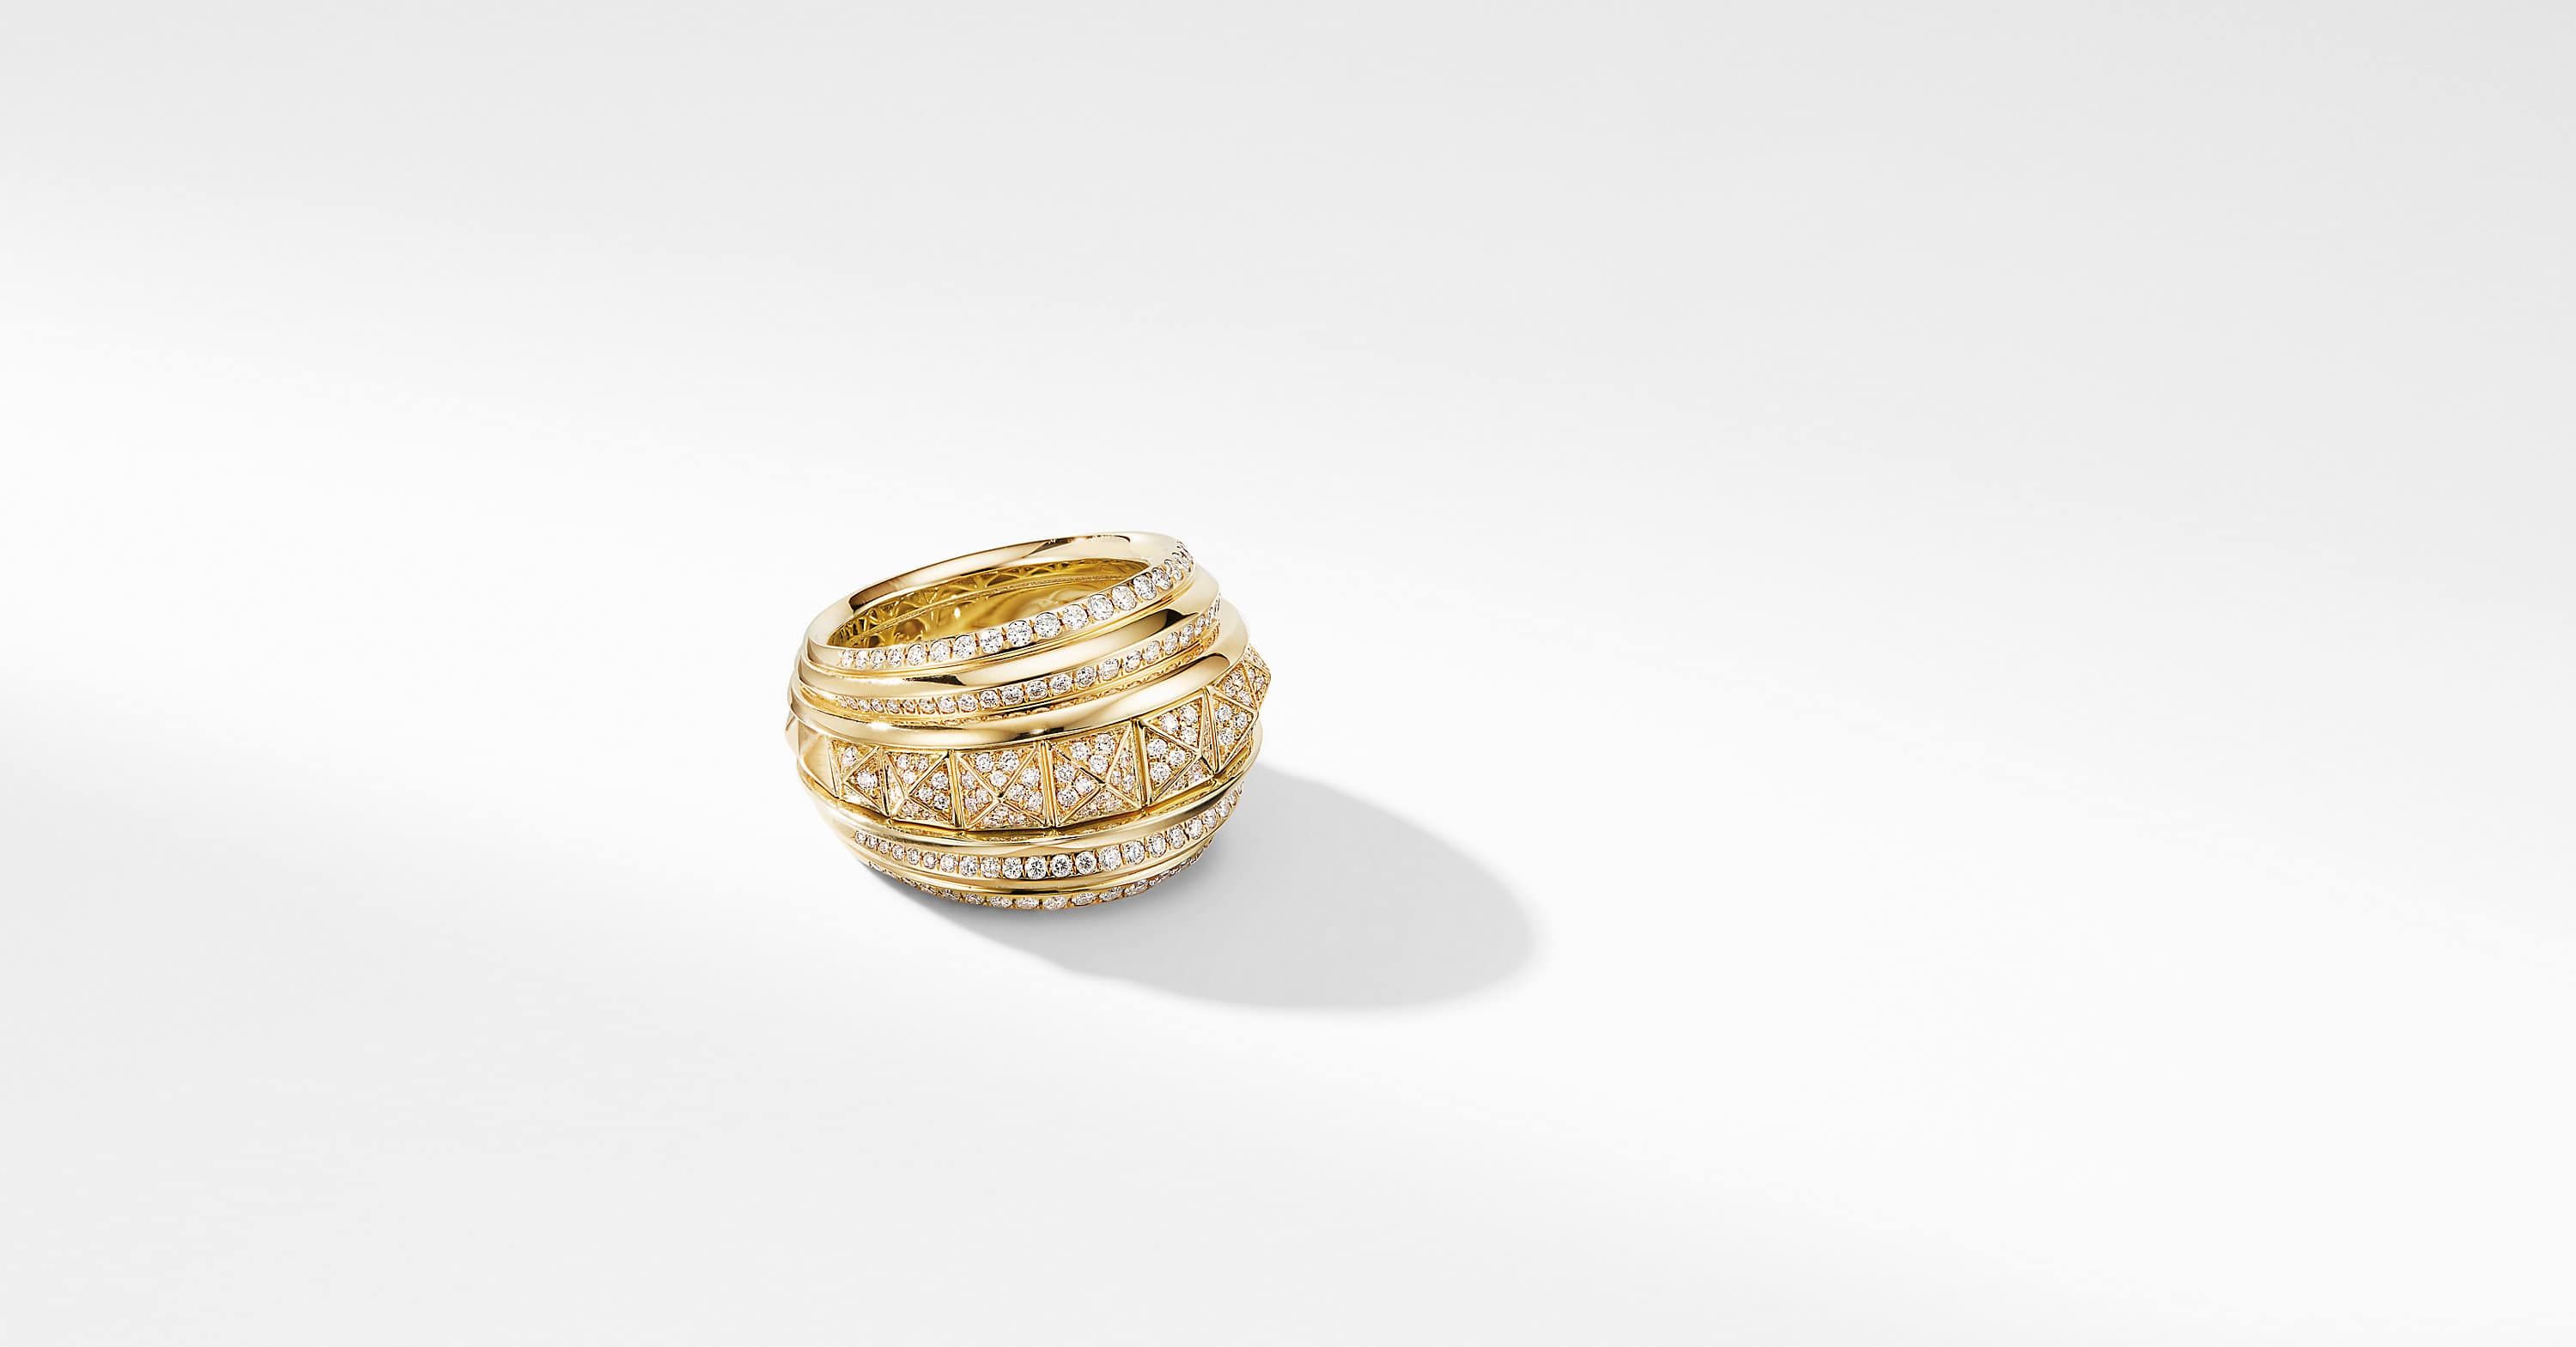 Bold Modern Renaissance in 18K Yellow Gold with Full Pavé